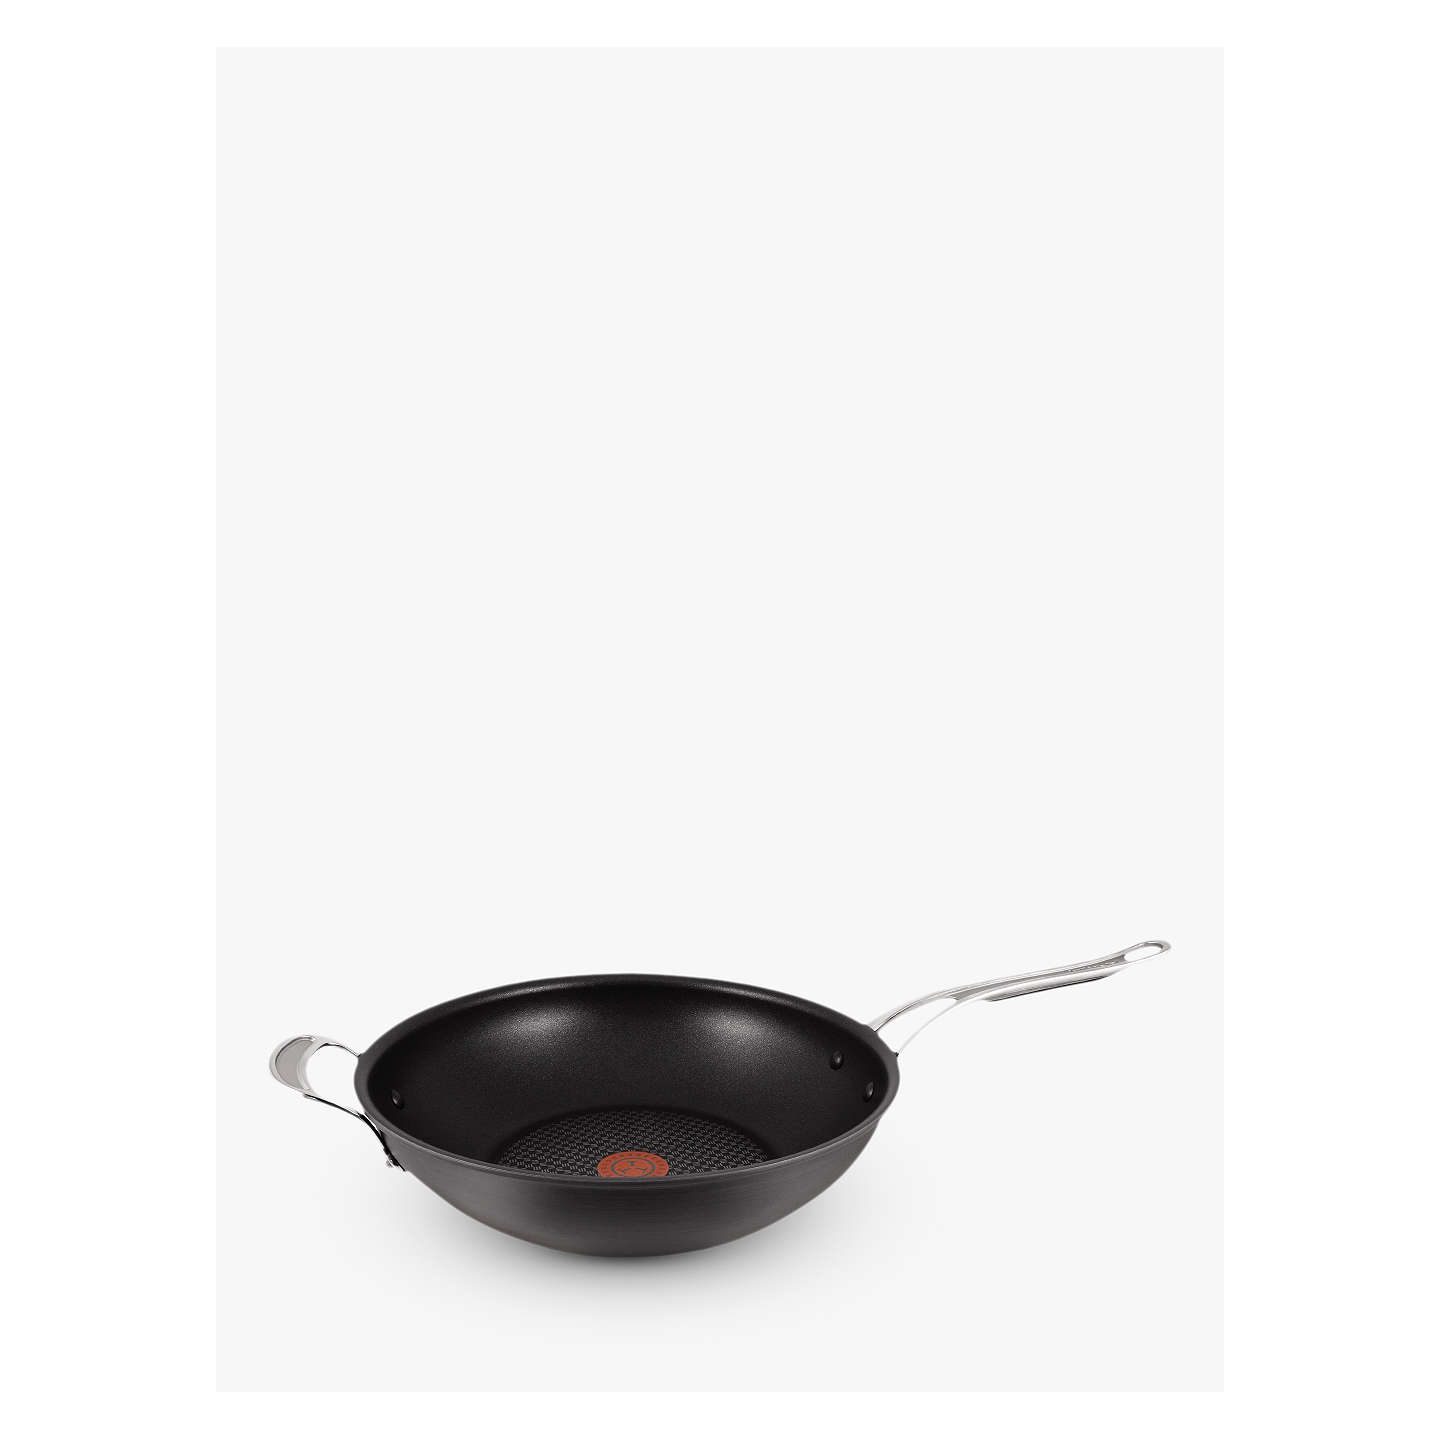 BuyJamie Oliver by Tefal Hard Anodised 30cm Wok Online at johnlewis.com